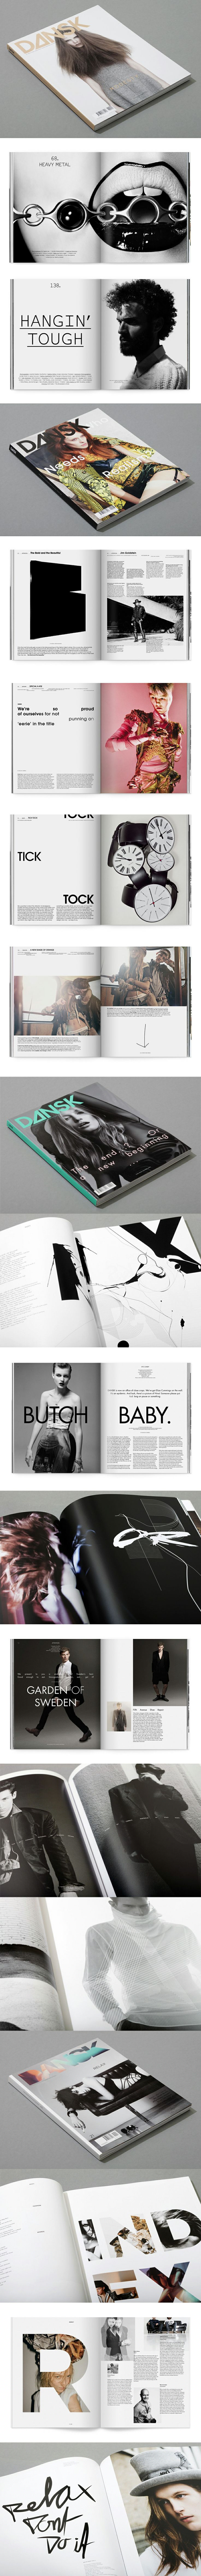 Dansk is a fashion magazine published biannually by Style Counsel and distributed in 30 countries worldwide. Art direction and illustration in cooperation with Michael Mandrup/Applied Projects  http://cargocollective.com/applied/dansk-magazine